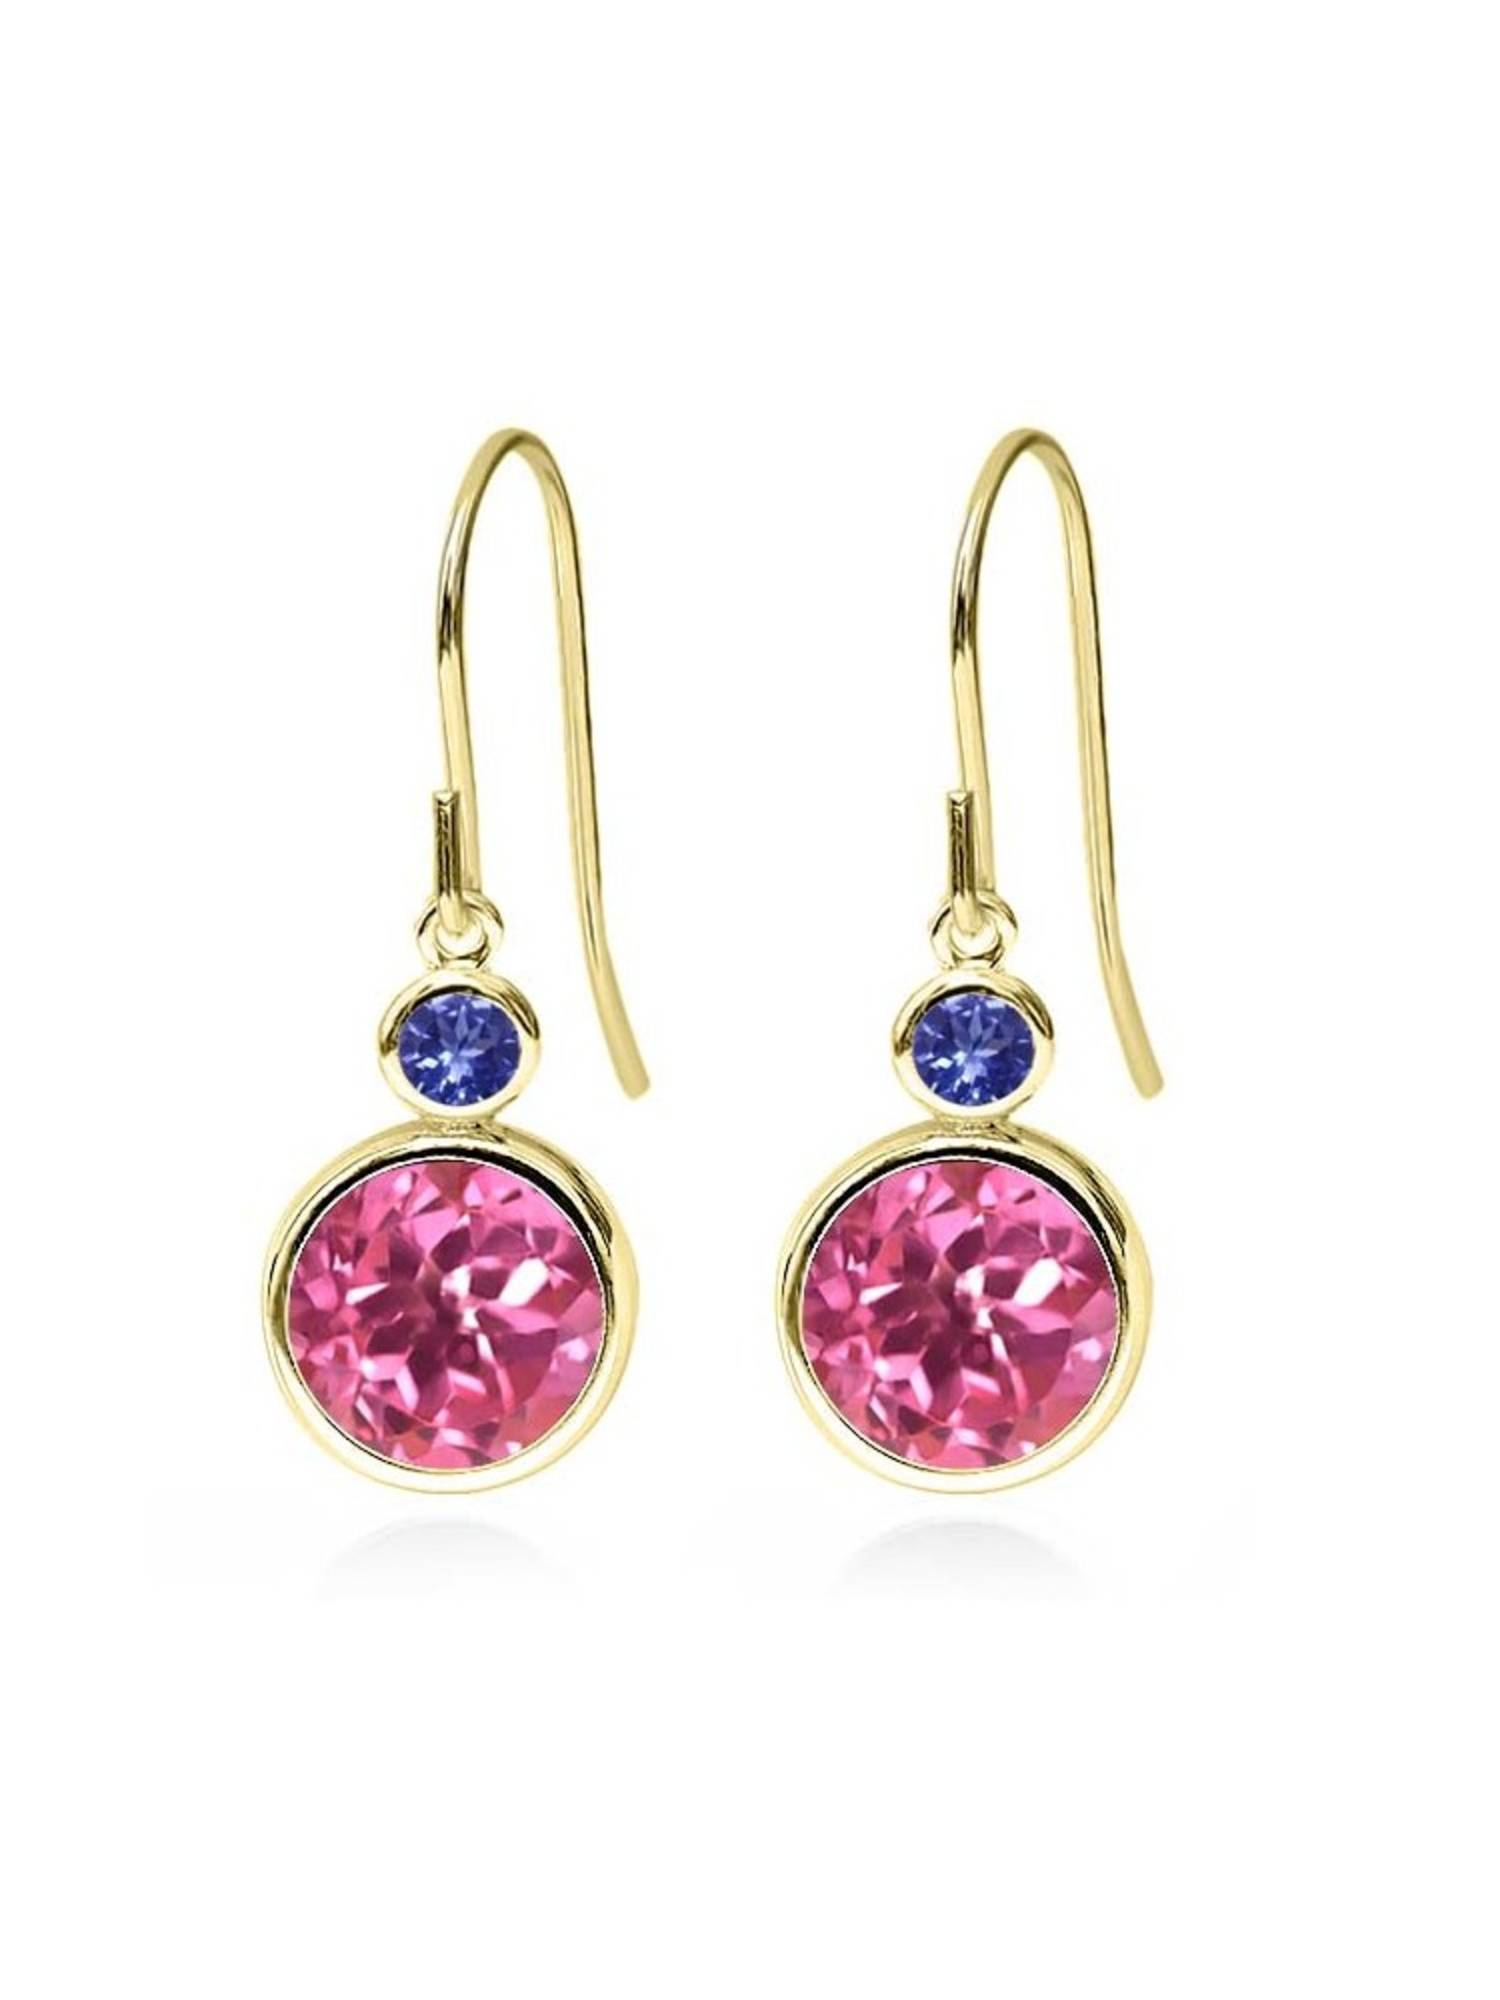 4.94 Ct Round Pink Mystic Topaz Blue Tanzanite 14K Yellow Gold Earrings by